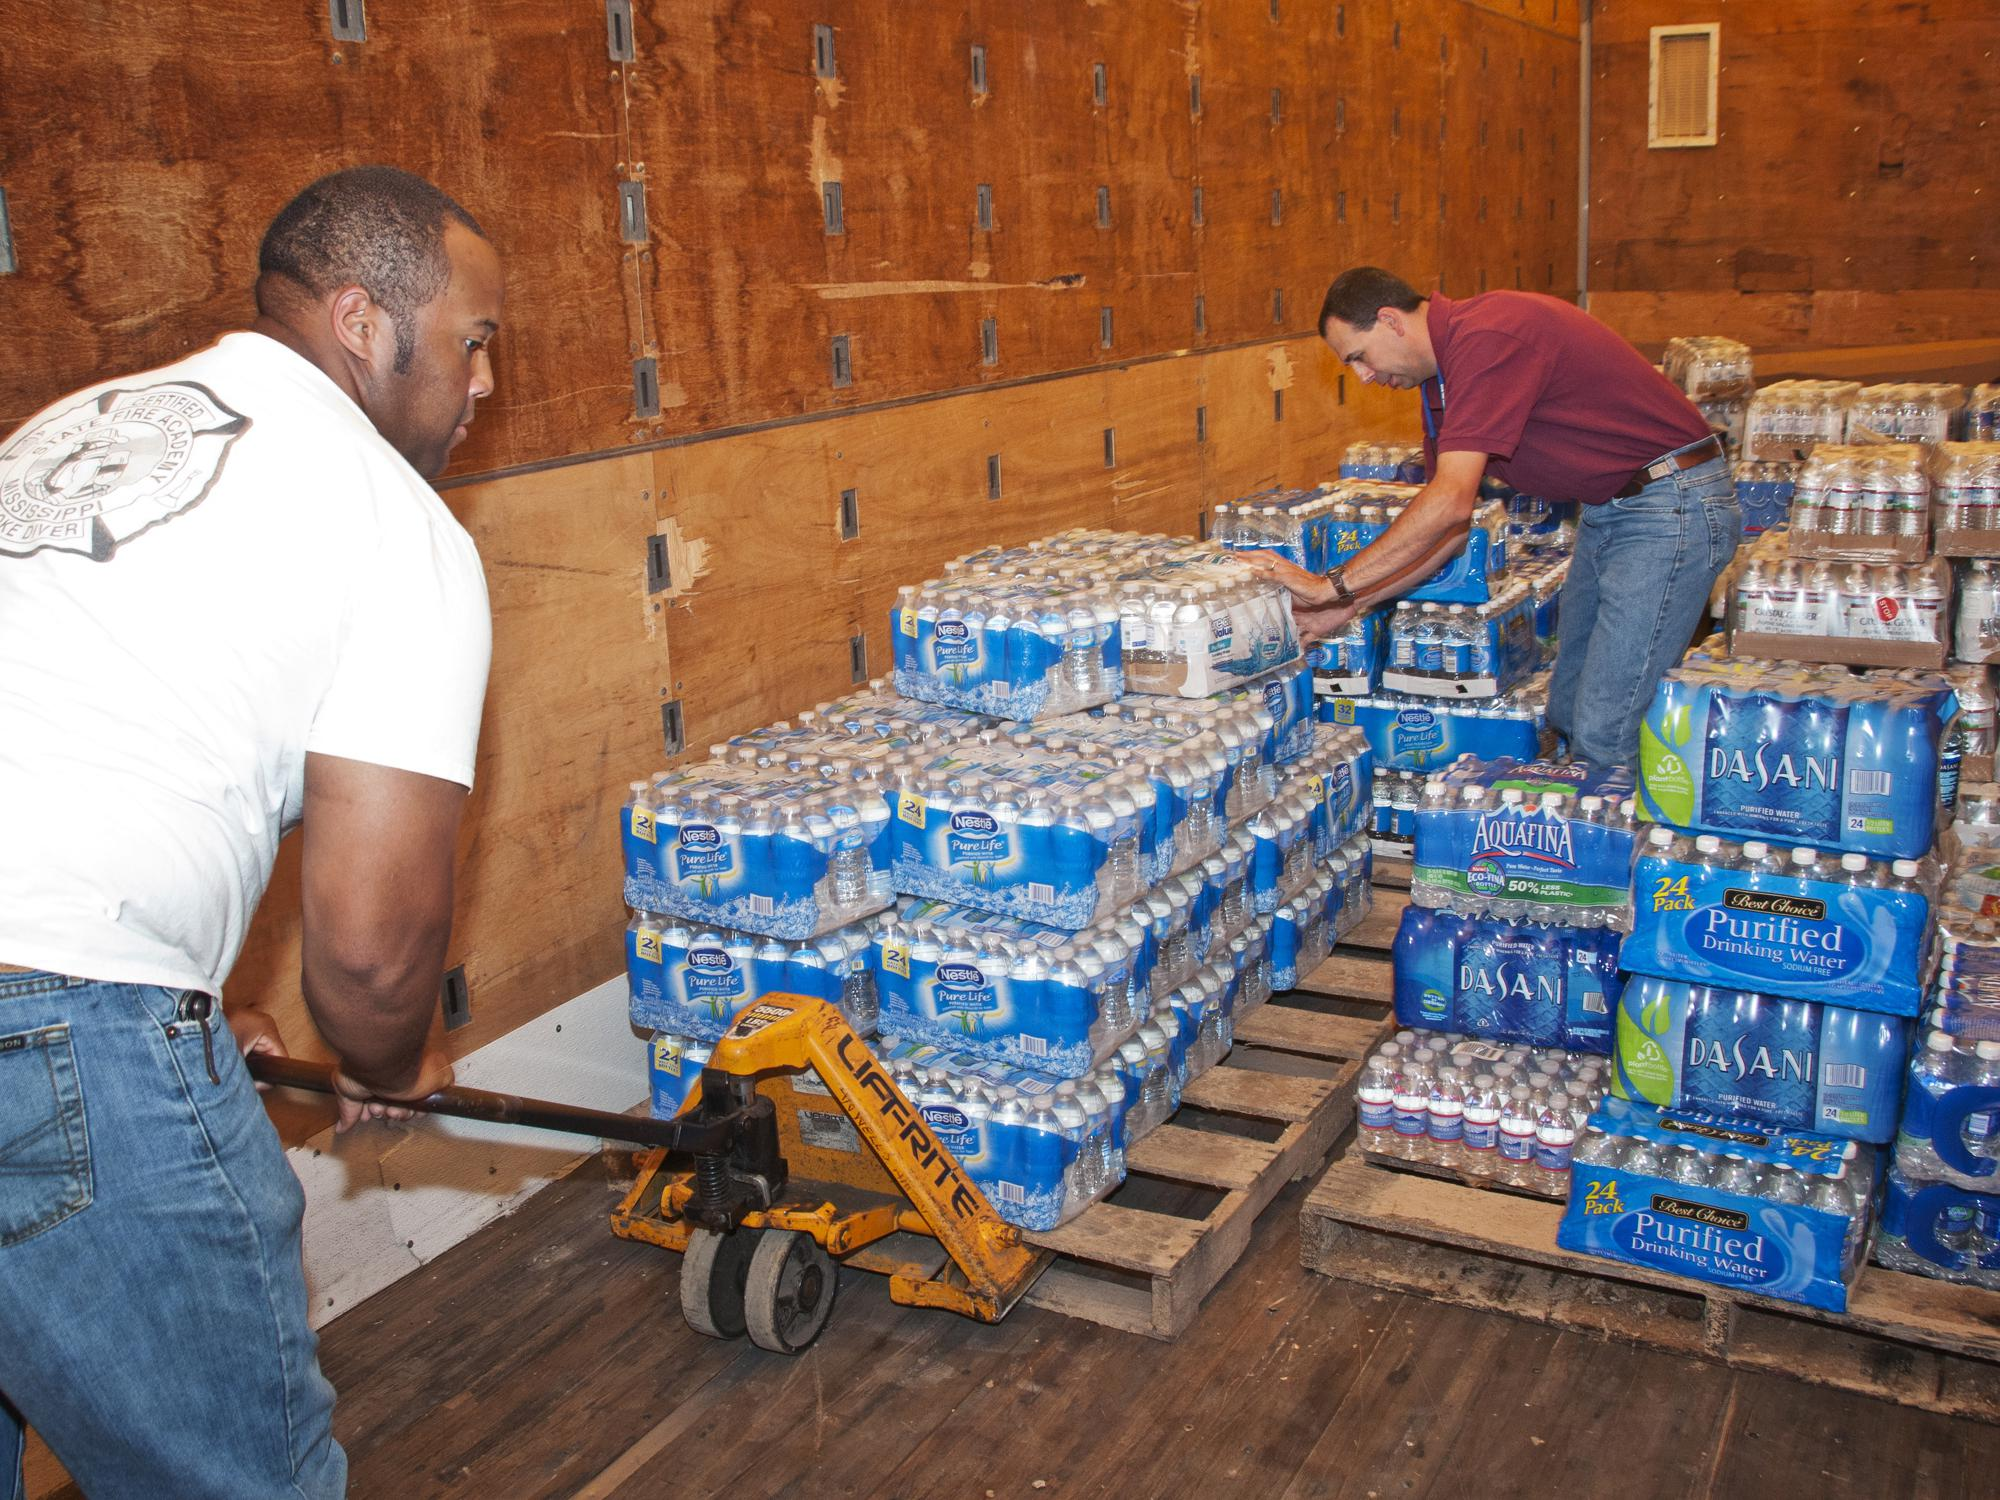 Two men move cases of bottled water in a storehouse.